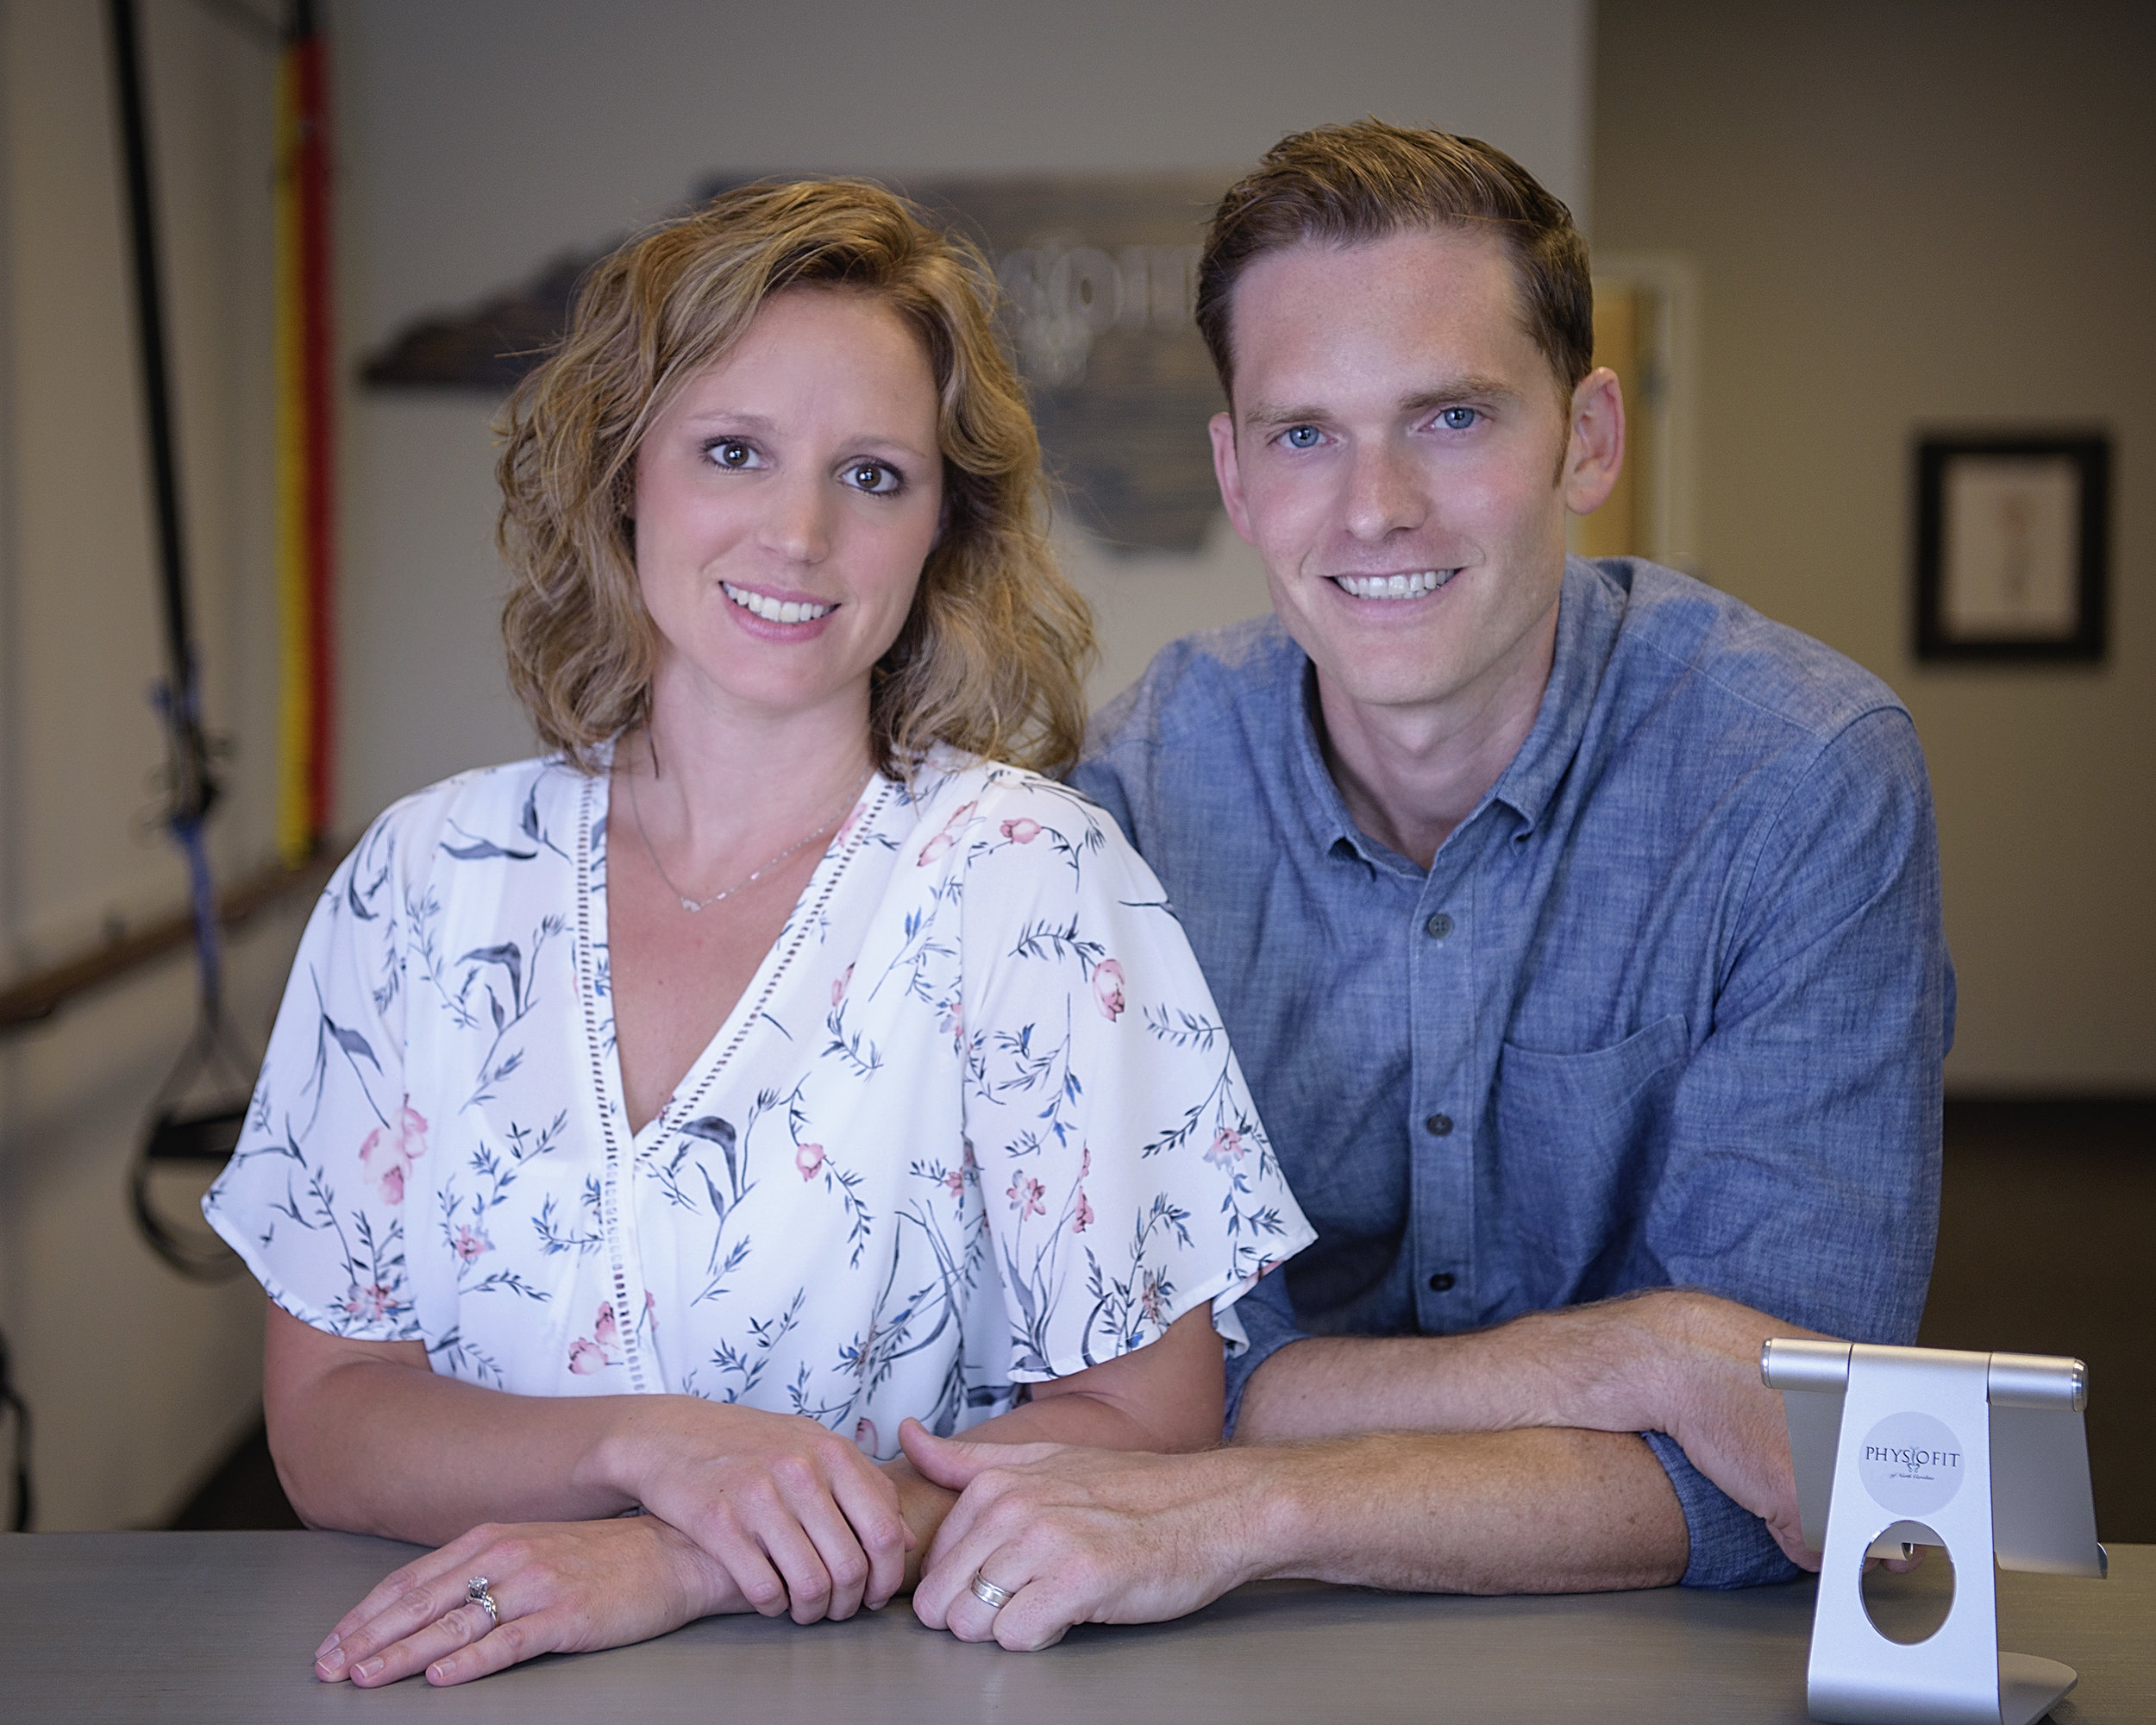 Family-Owned - Doctors Danielle and Harrison Vaughan are very excited to bring their Physiotherapy product to the Wake Forest, NC region. With almost 20 yrs of combined experience, you will not find Physiotherapy services like ours in the area. With specializations in back/neck pain, pelvic floor and vestibular conditions, we bring the most up to date and natural treatments to you. Patients love the simplicity and openness of our healthcare. The expertise alongside our 1:1 care proves our approach is both unique and personable.Experience how we can help you.